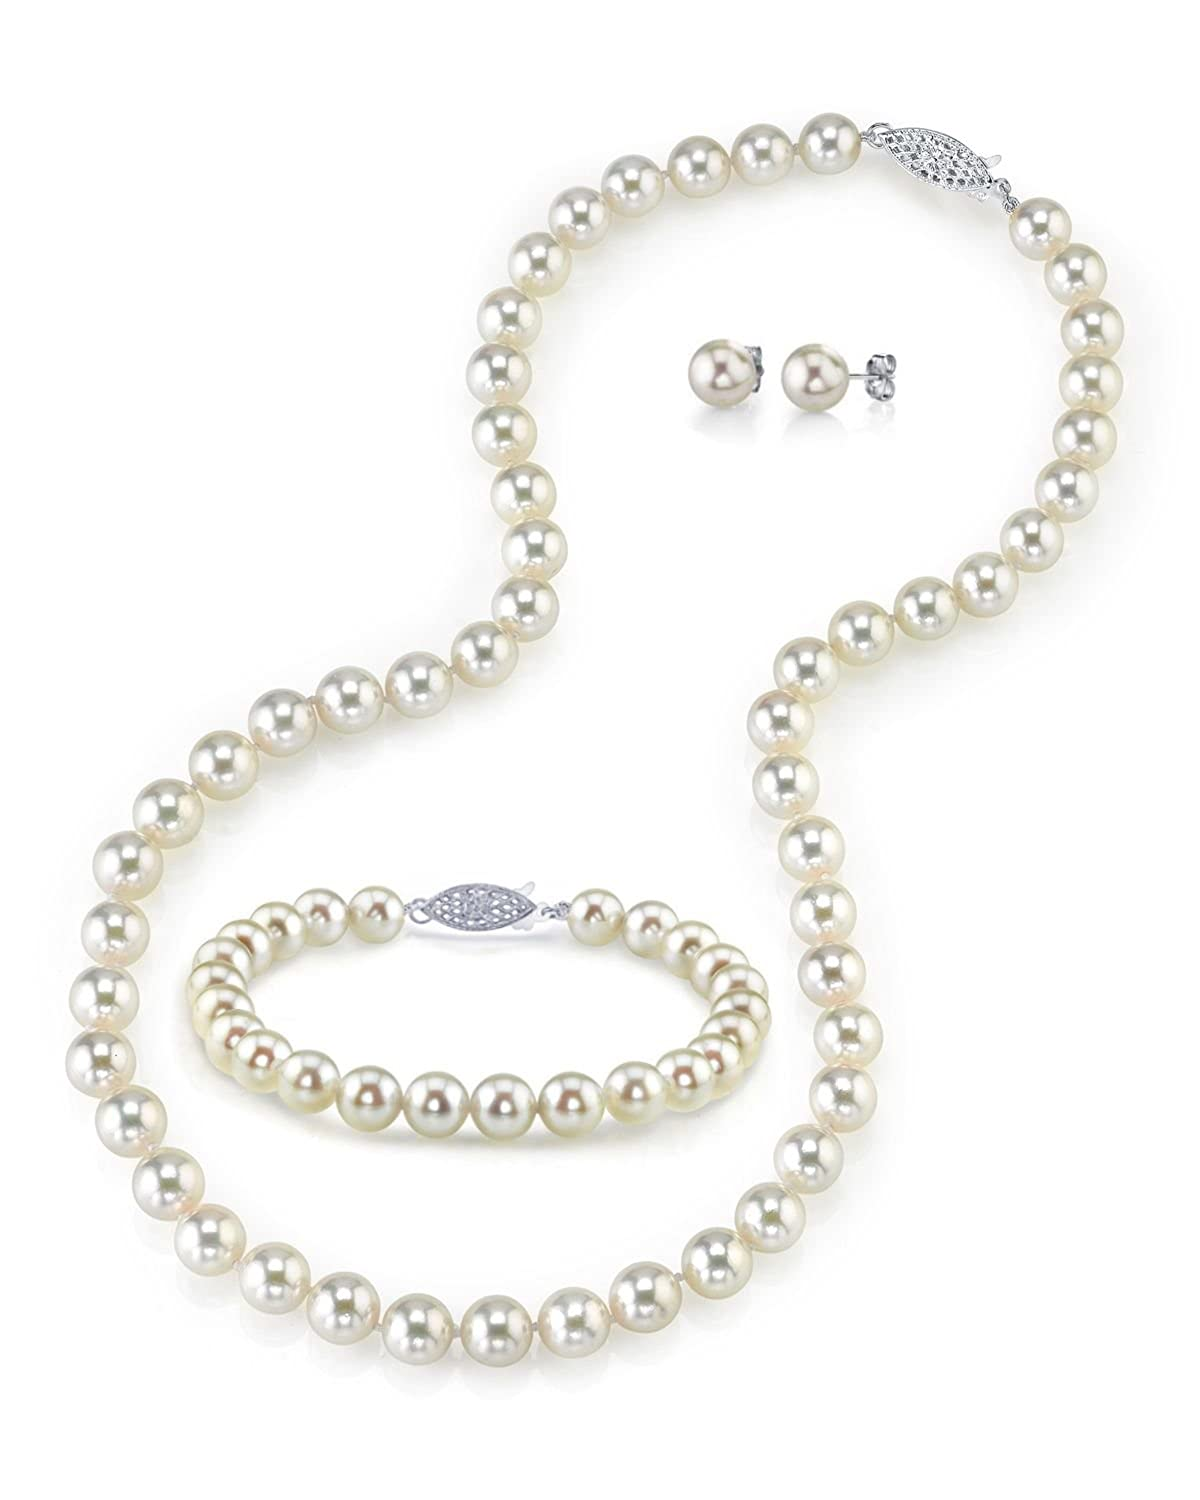 "14K Gold 6.0-6.5mm White Akoya Cultured Pearl Necklace, Bracelet & Earrings Set, 18"" - AA+ Quality"